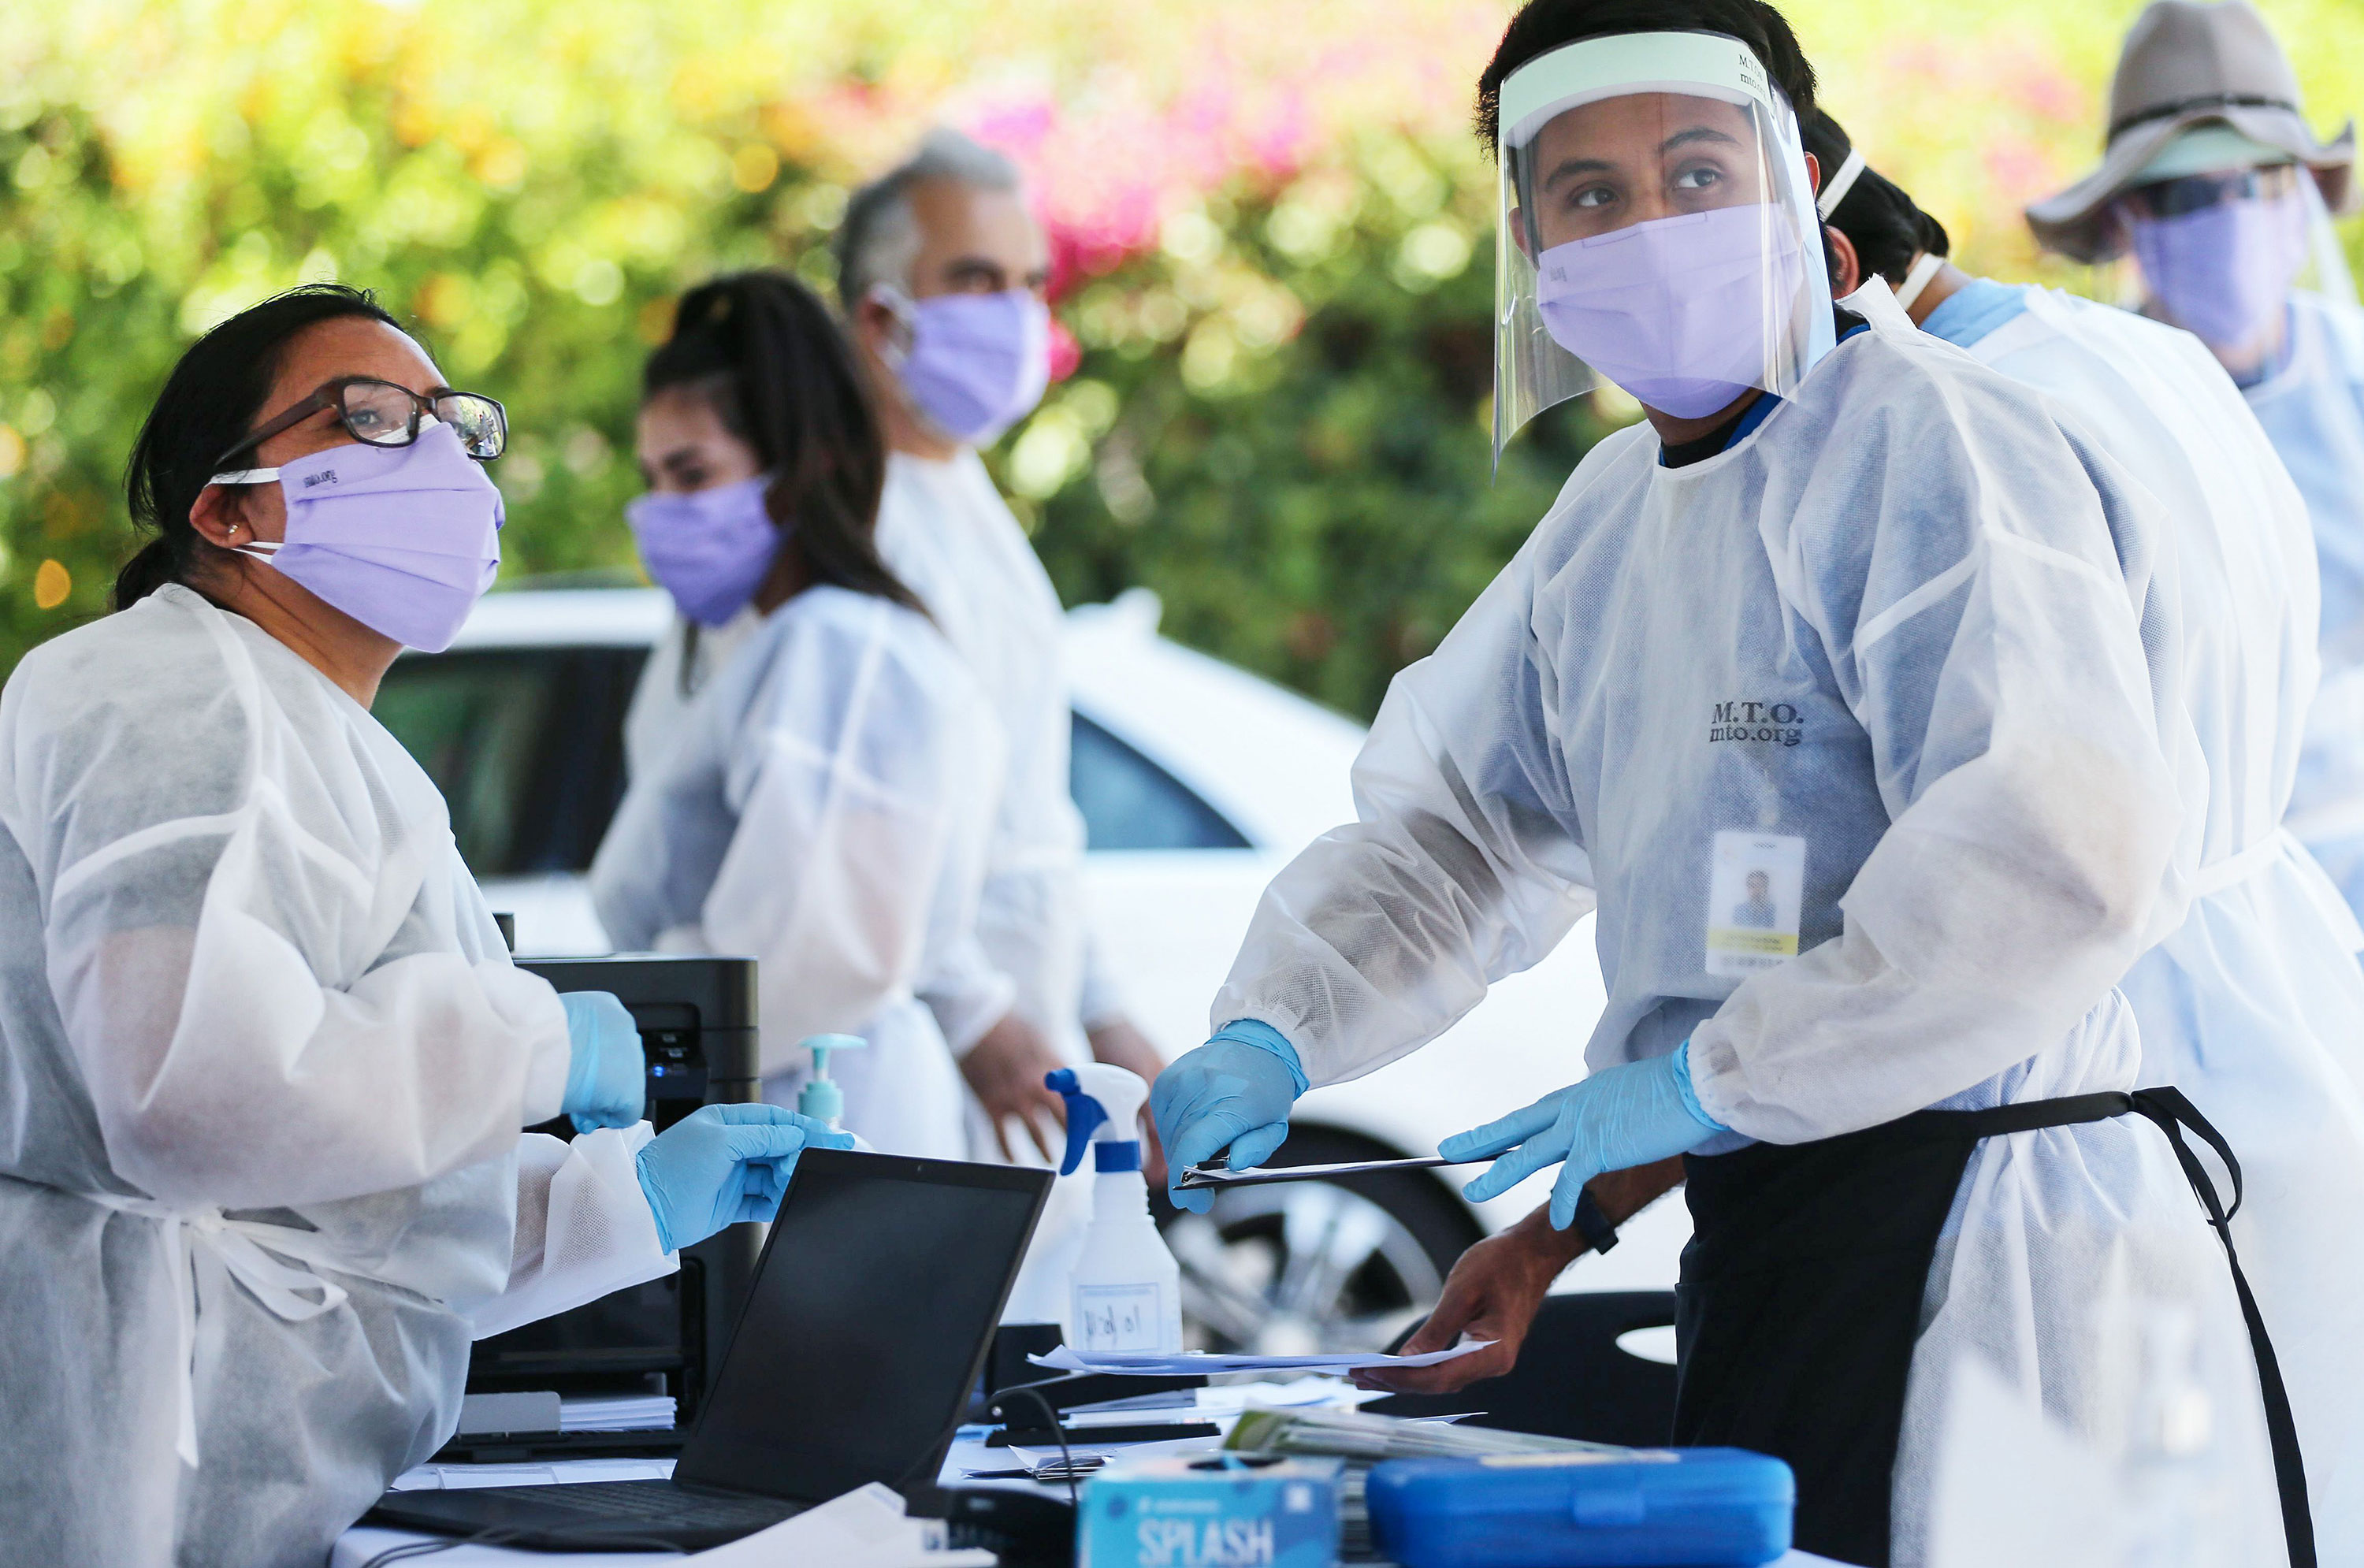 Healthcare workers facilitate tests at a drive-in coronavirus testing center on August 11 in Los Angeles, California.